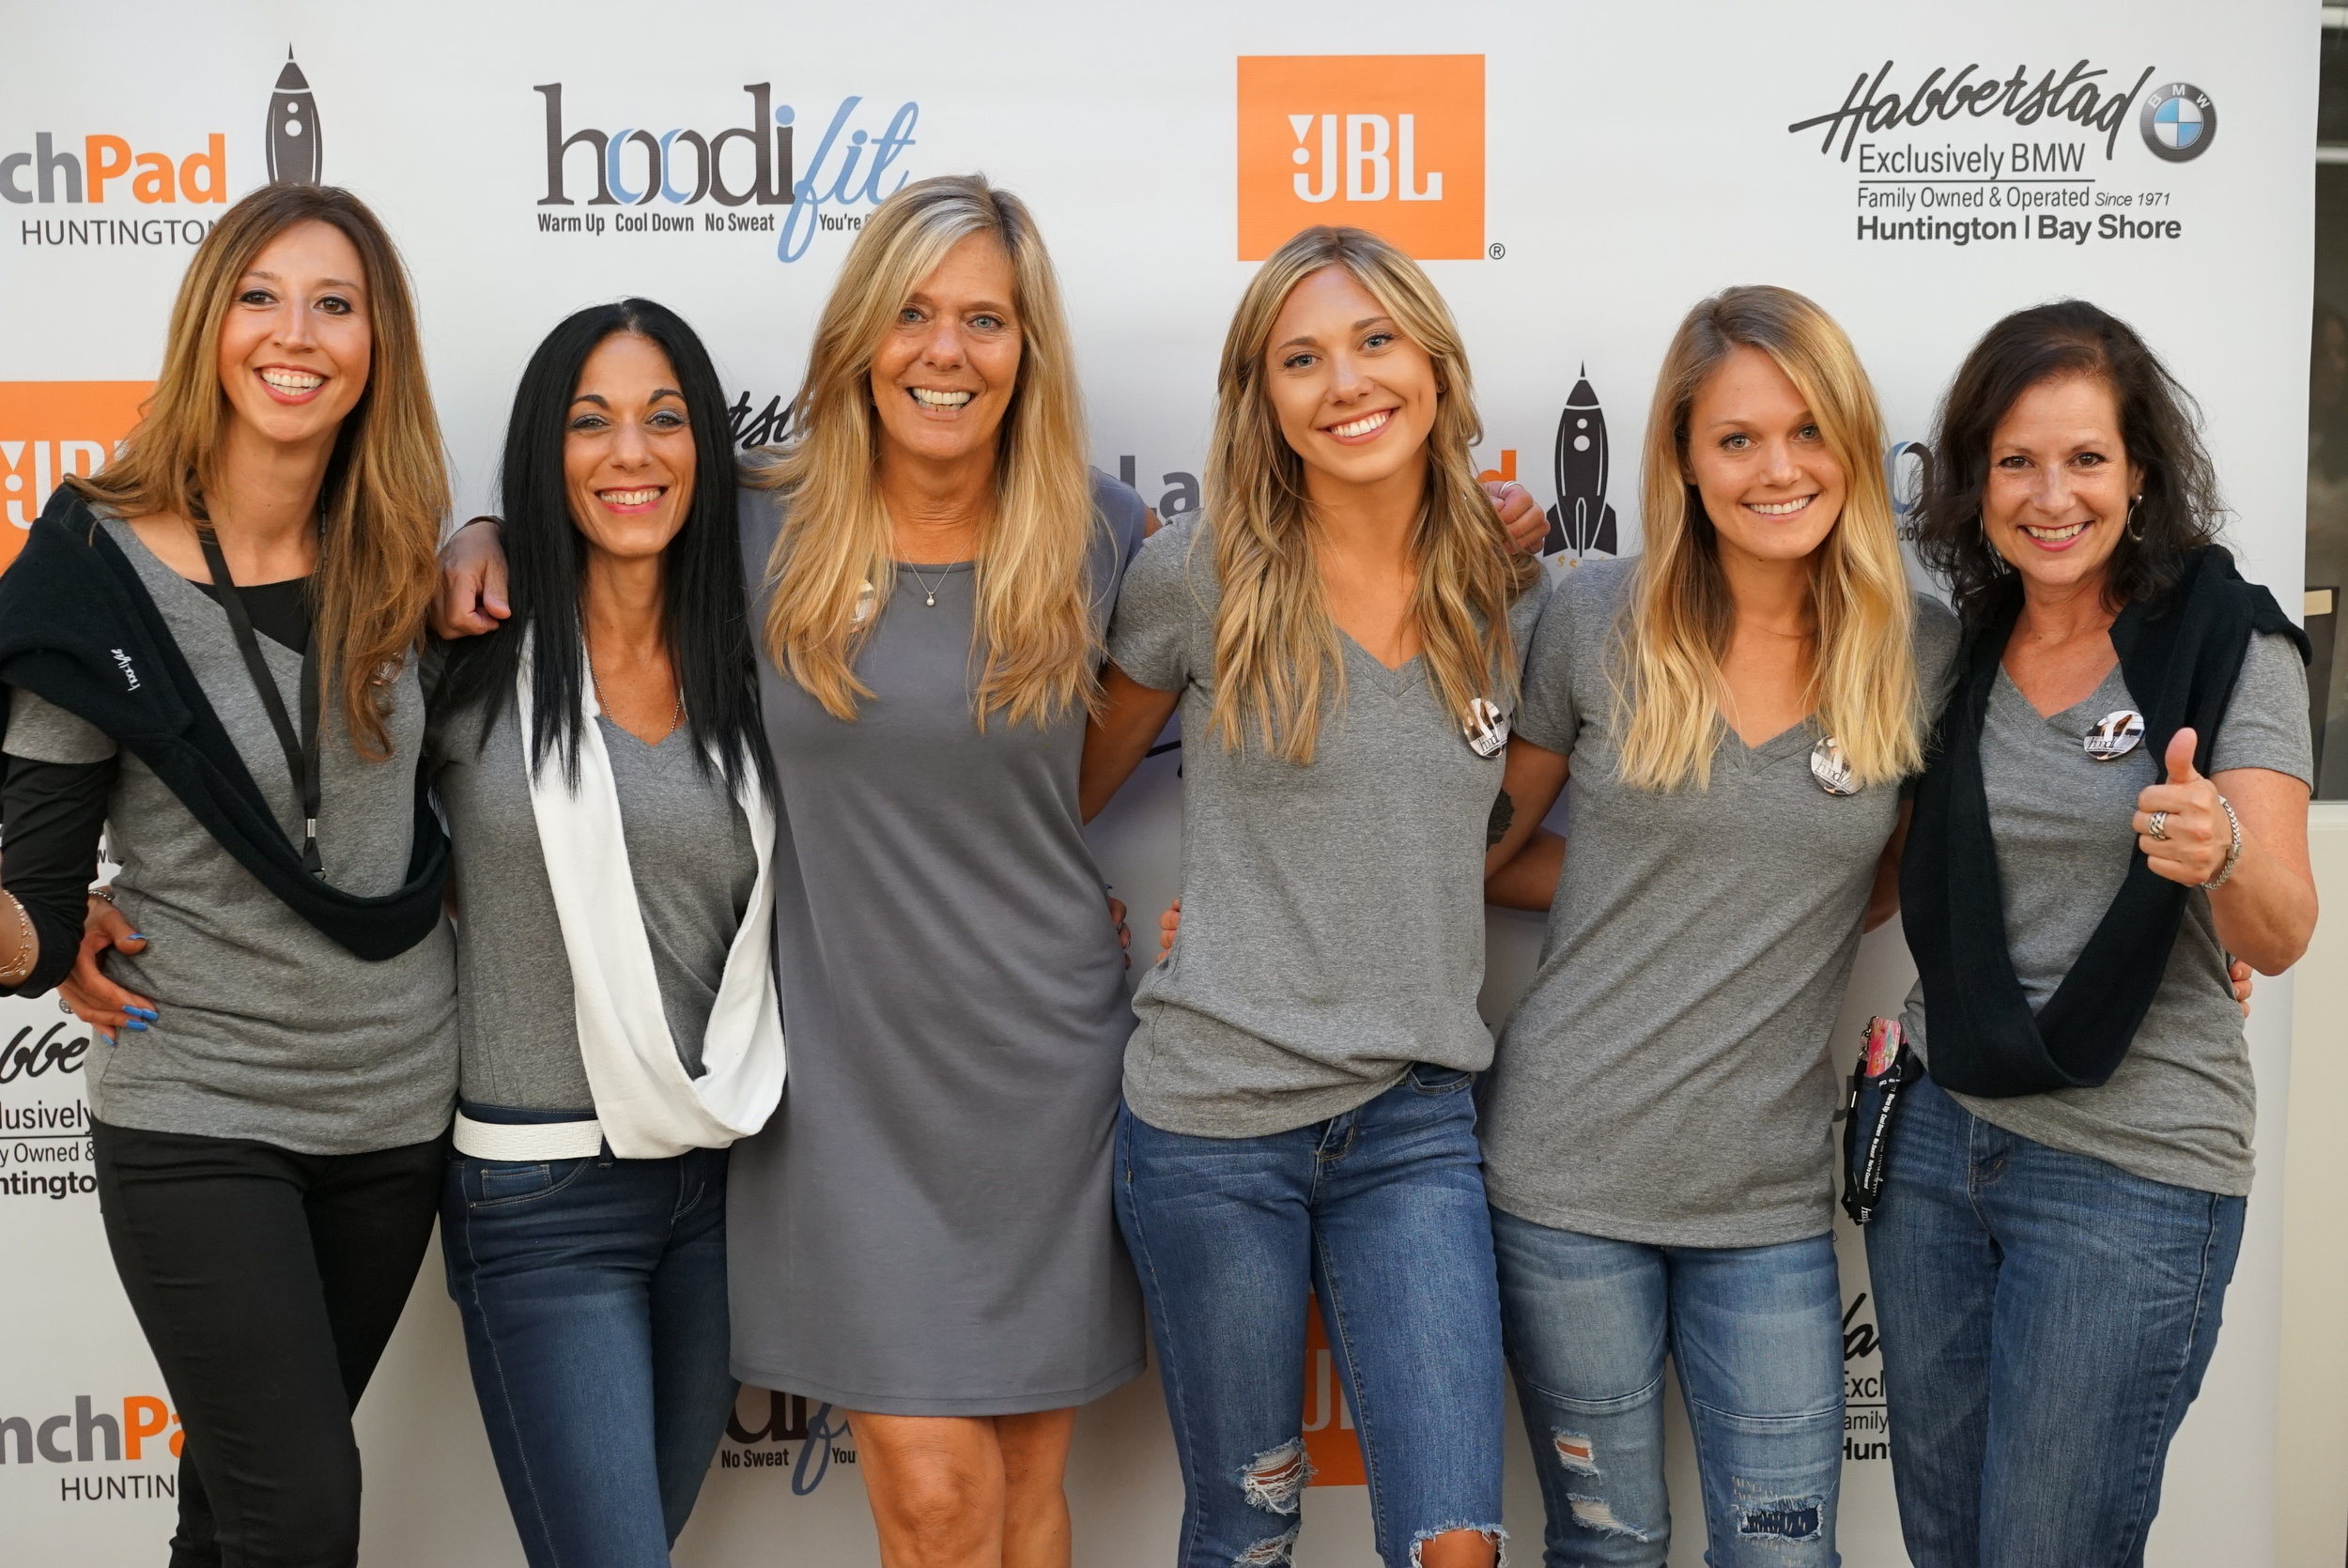 Team HoodiFit - Much love to our amazing team, a great big cyber 'shout out' and much love! We couldn't do this without every one of you <3From left to right: Veronica and Maria - Sales and Promotions, Laurie, Sarah, Melissa and Hope - our fabulous Brand Developer.